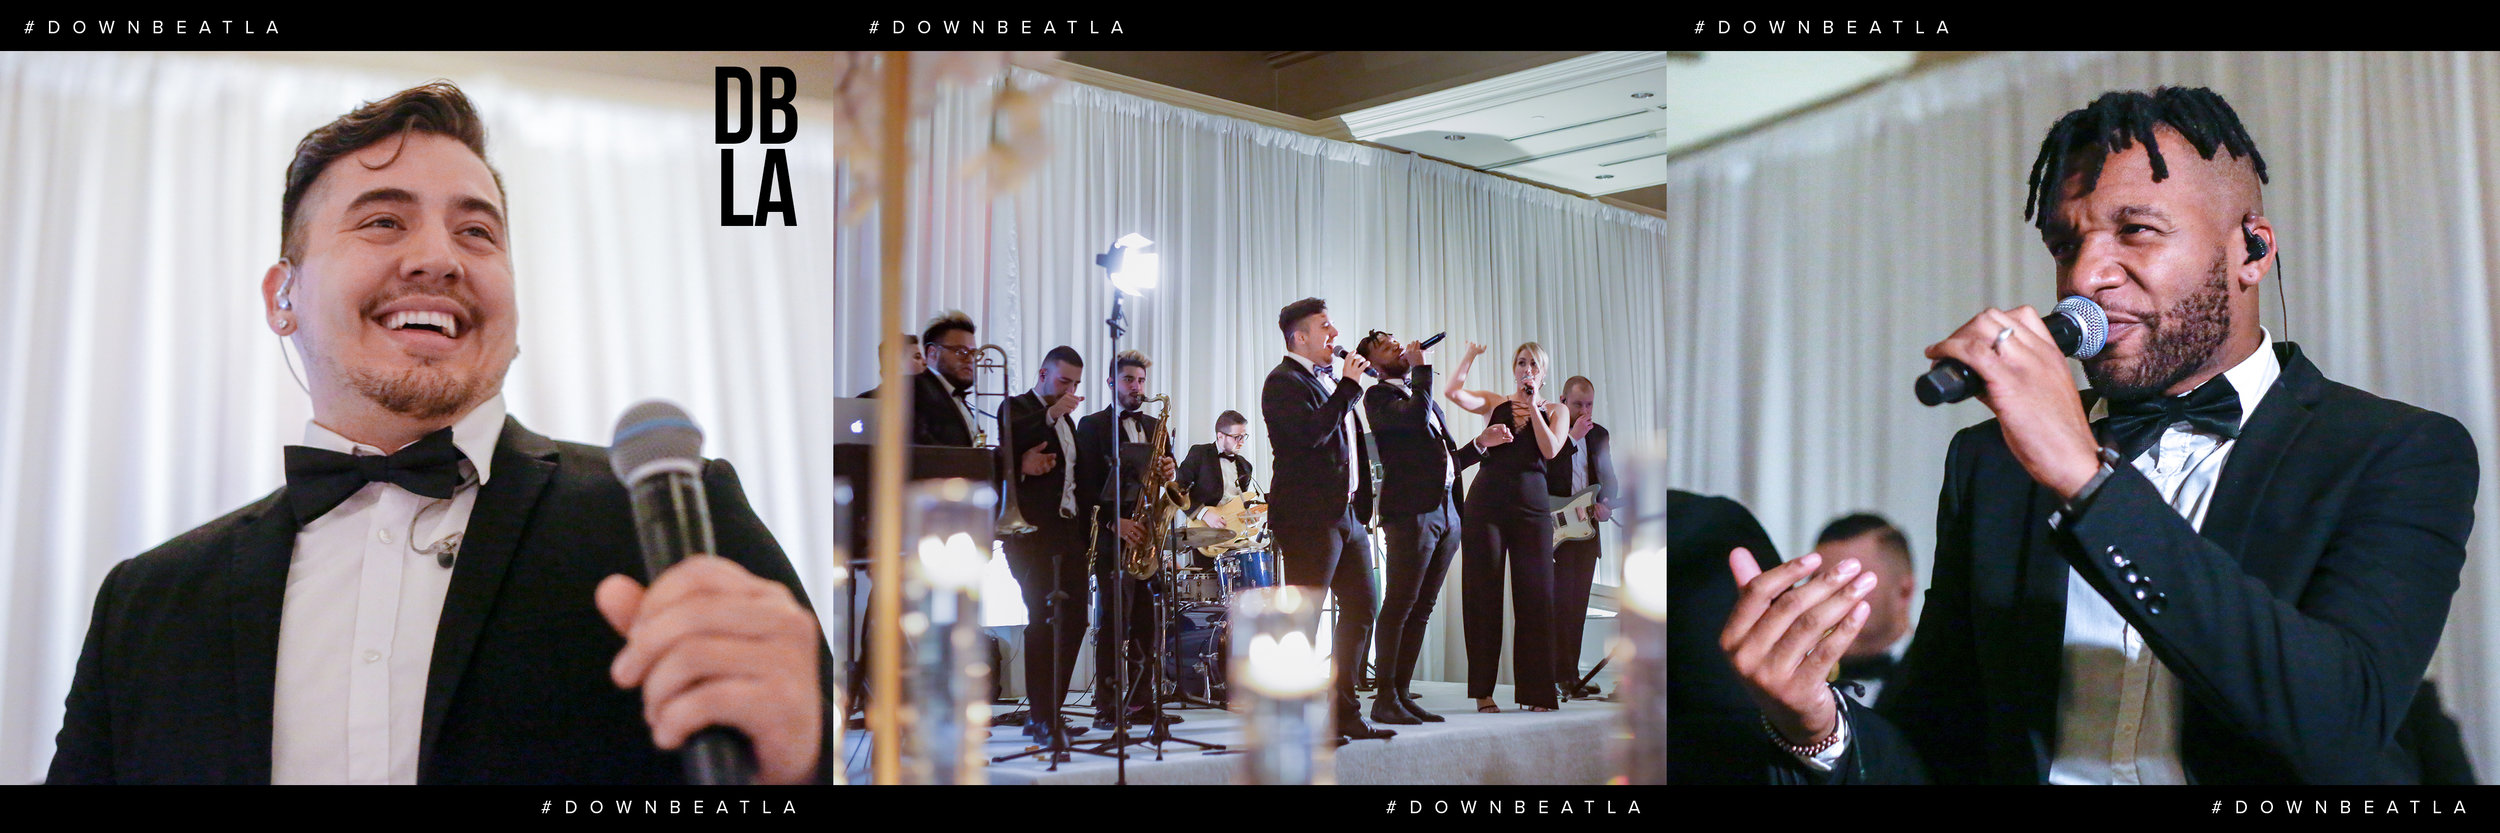 Gold Standard Downbeat LA Ritz-Carlton, Laguna Niguel Wedding Band